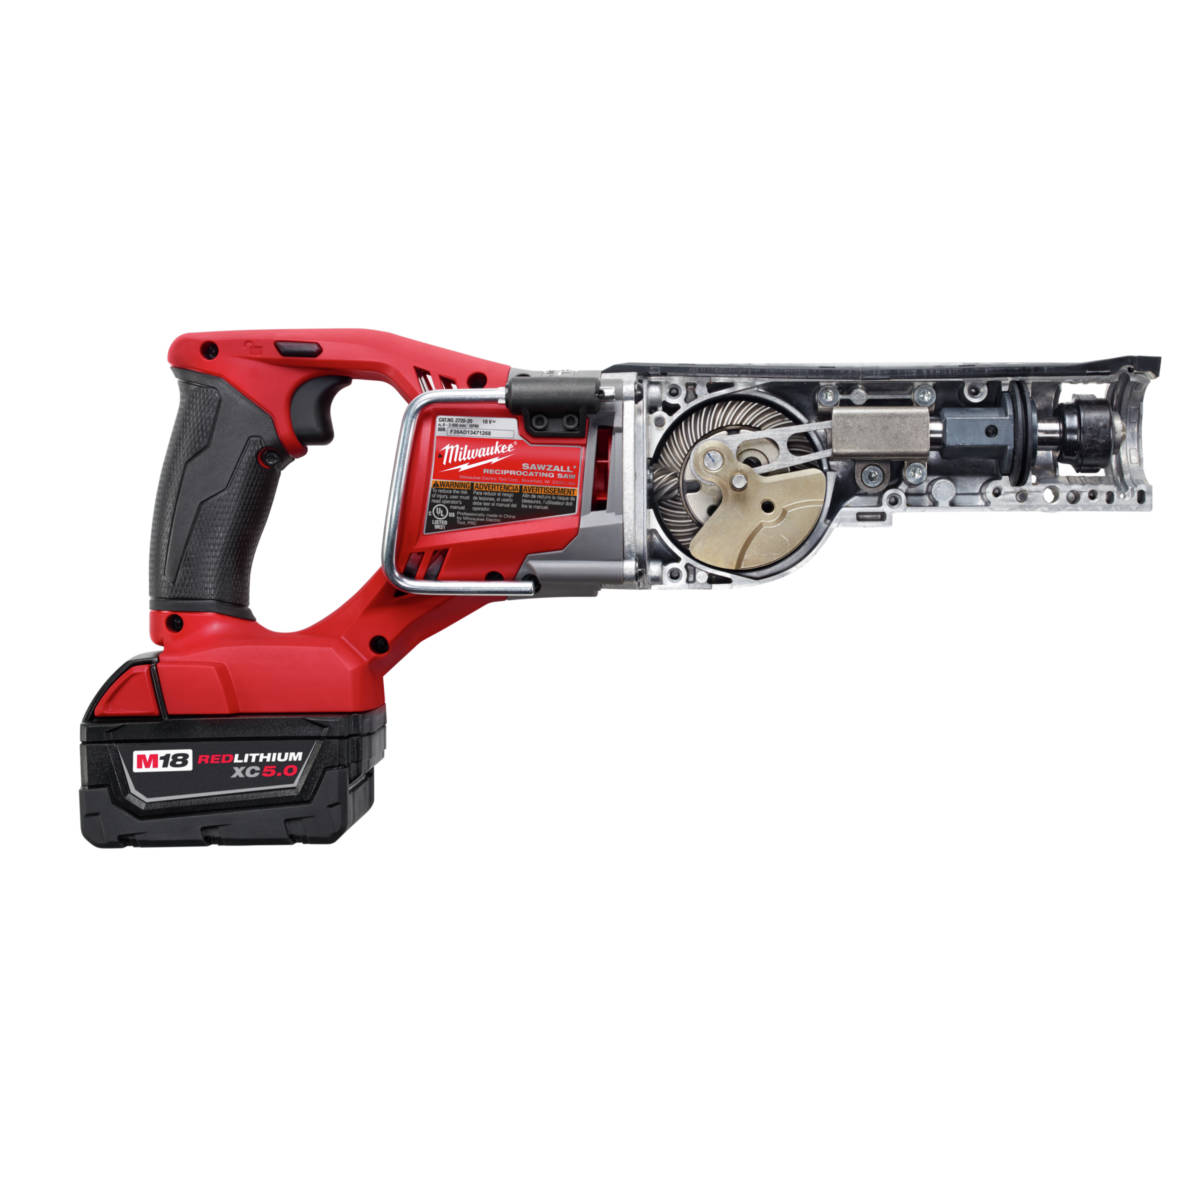 M18 FUEL Lithium-Ion Sawzall Reciprocating Saw features patented gear protecting clutch